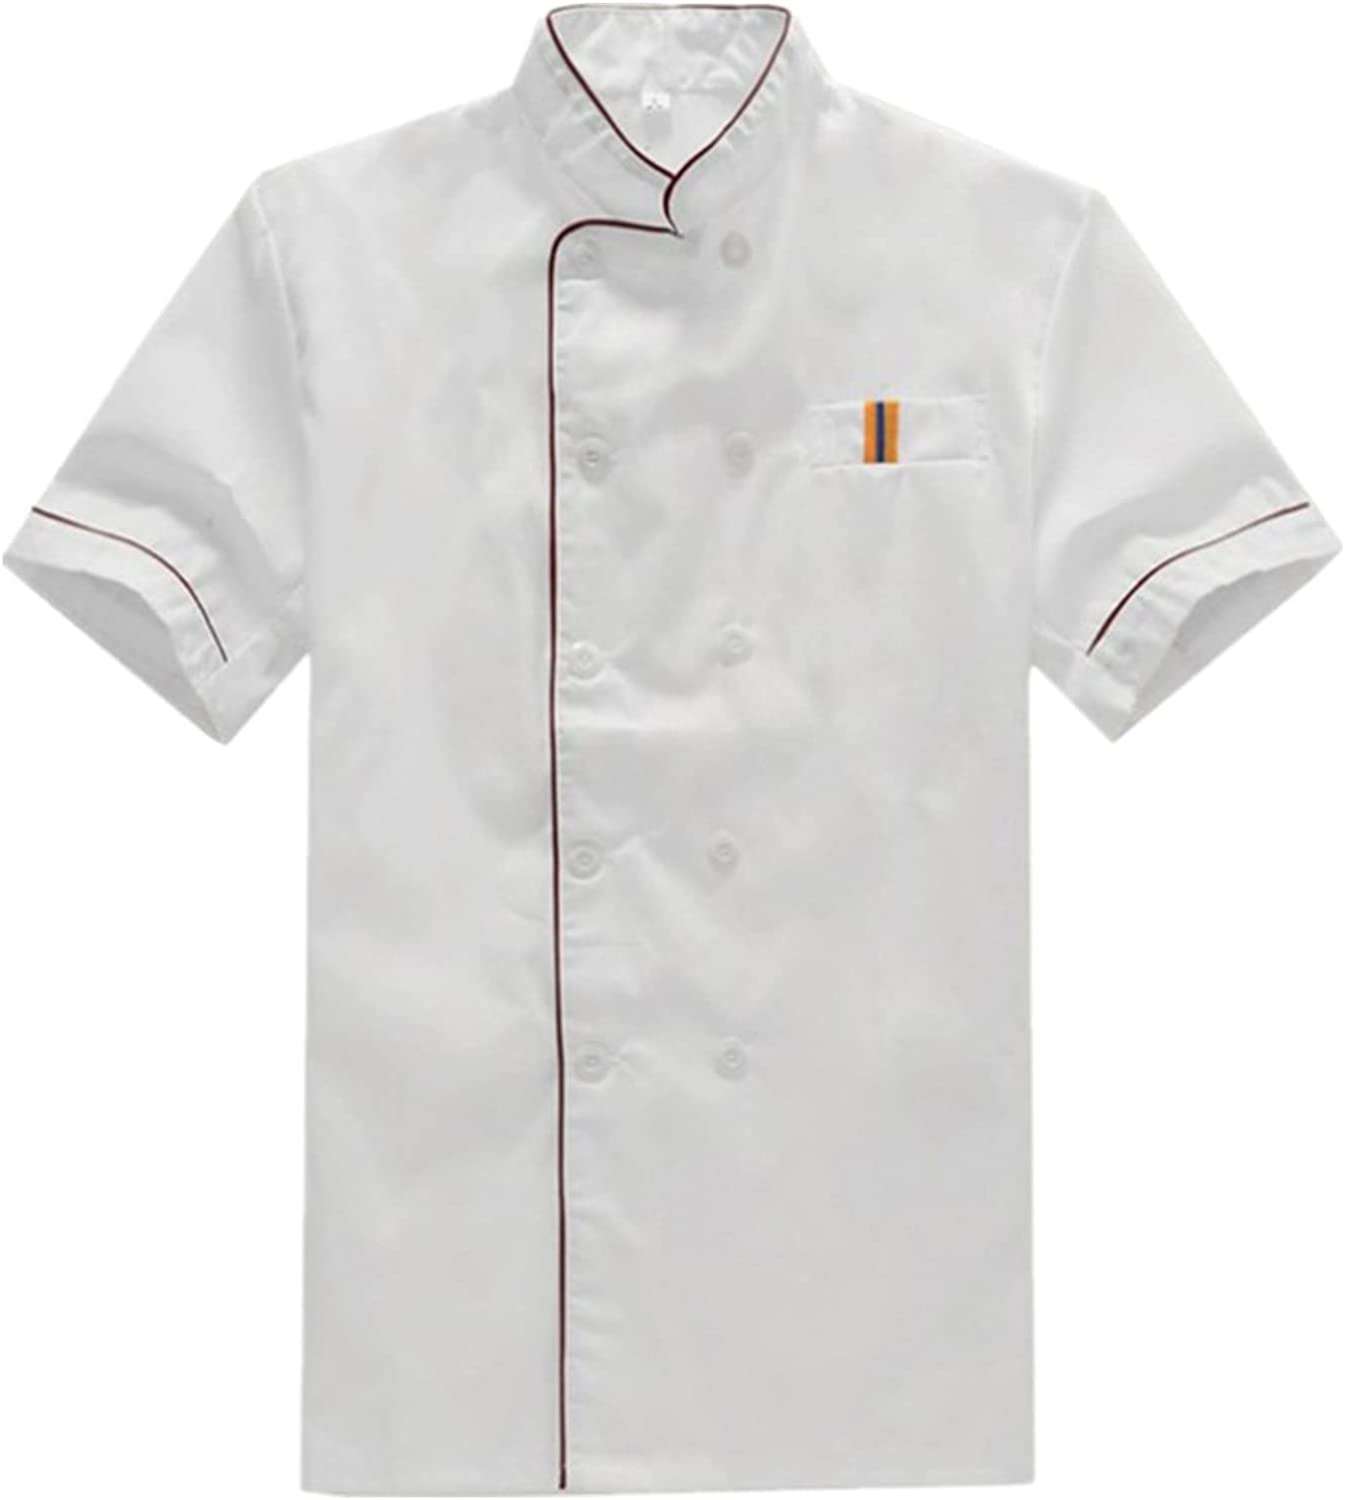 MSemis Unisex Chef Popular Special price for a limited time products Jacket Men's Short Che Sleeve Double-breasted